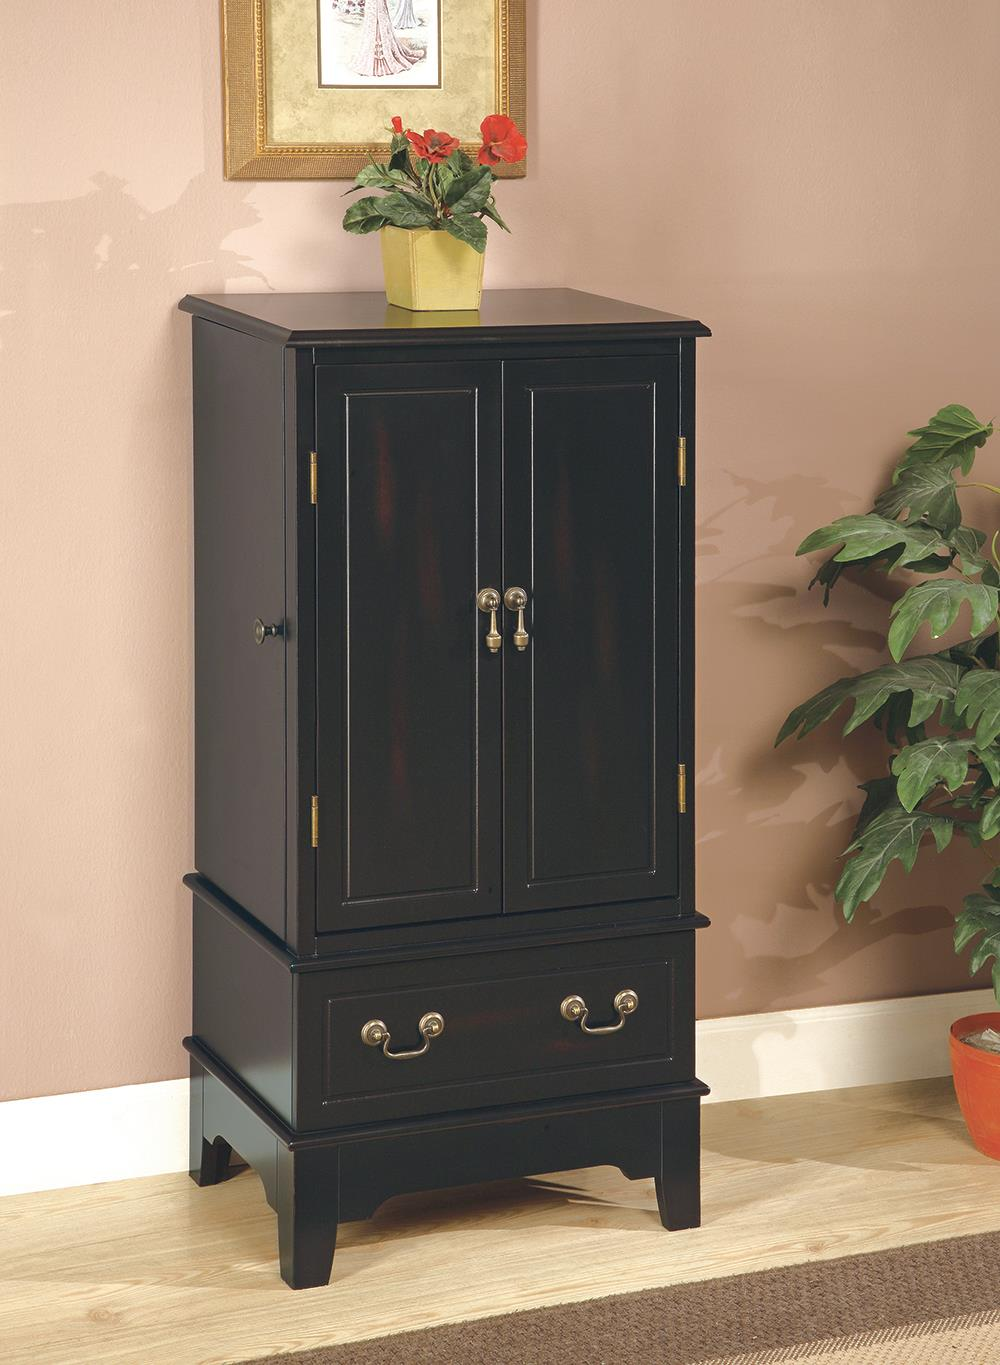 Transitional Black Jewelry Armoire